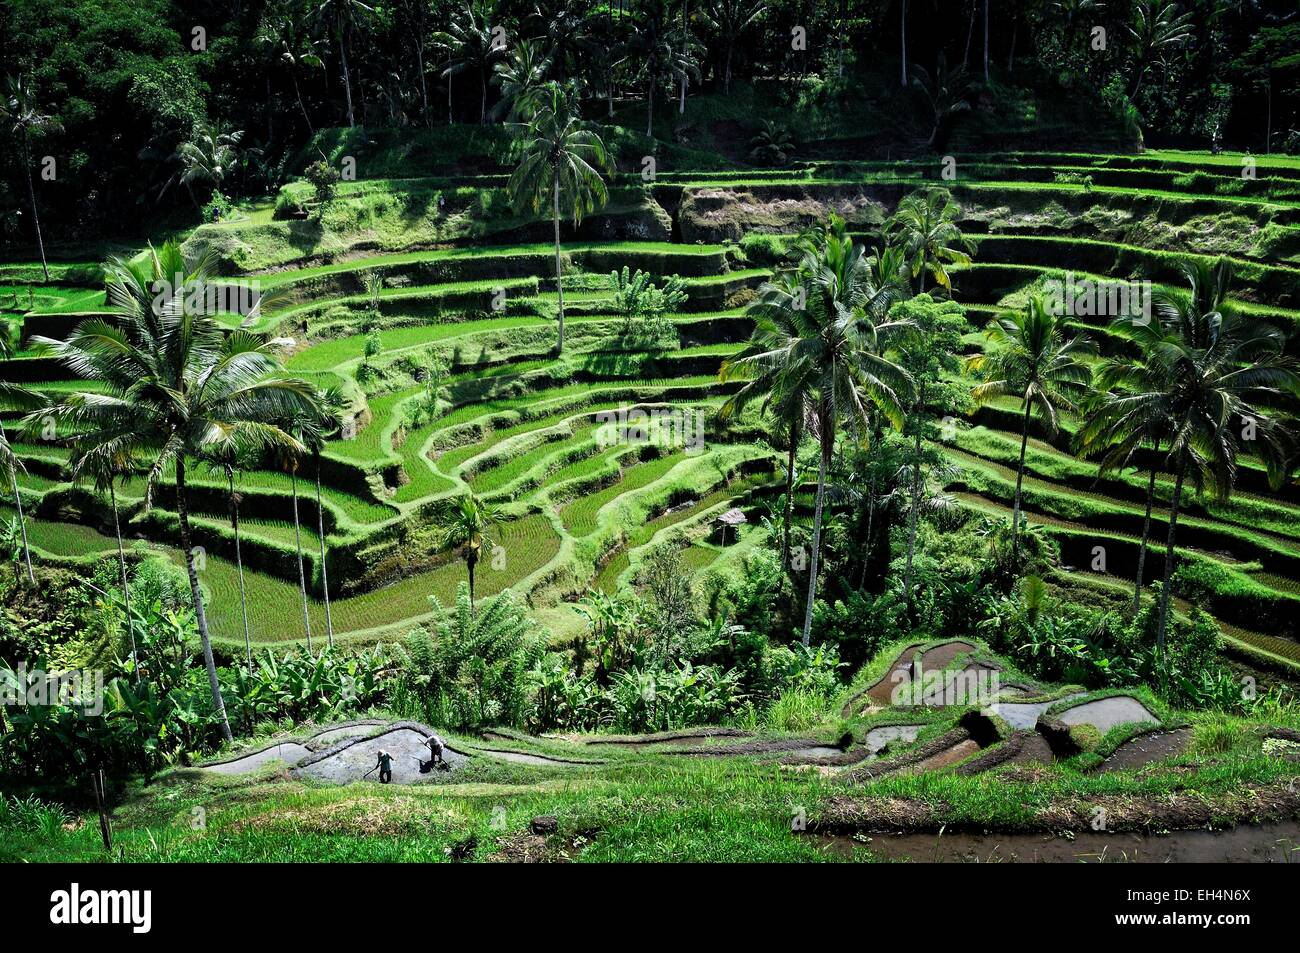 Indonesia, Nusa Tenggara, Bali, Tegallalang rice terraces listed as World Heritage by UNESCO - Stock Image